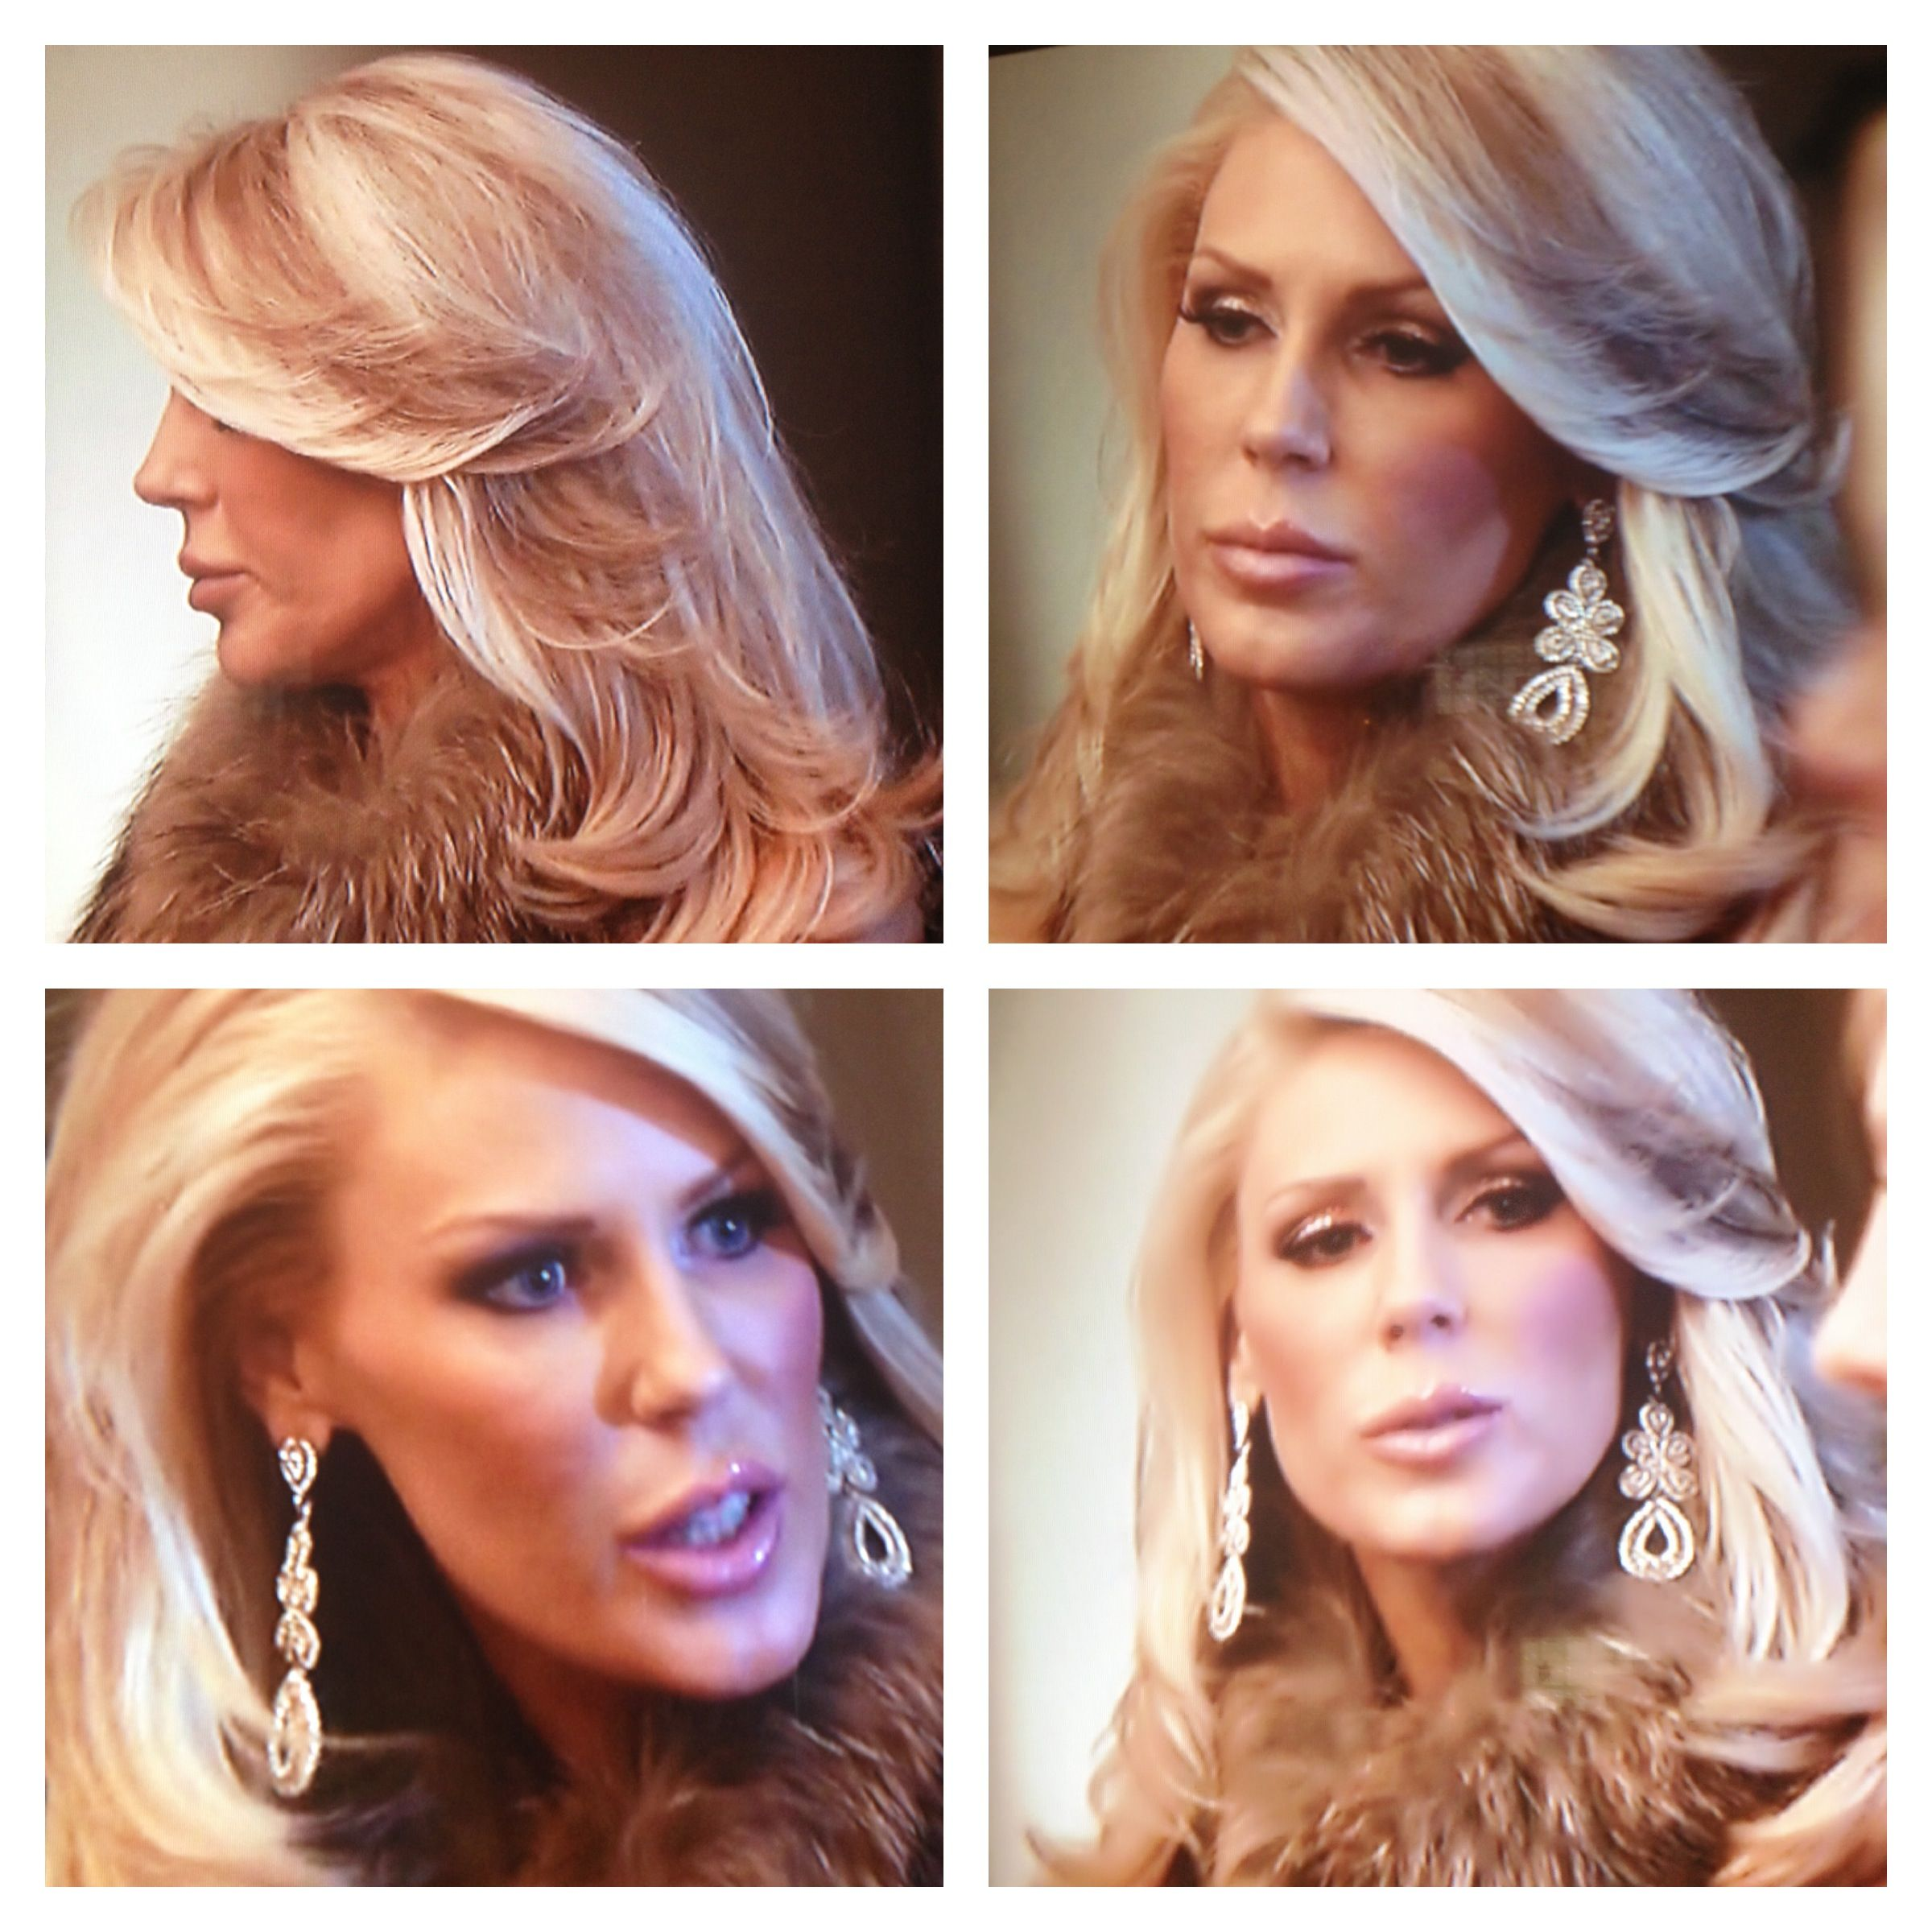 My Favorite Real Housewives Of Oc Gretchen Rossi Colorstyle Yet